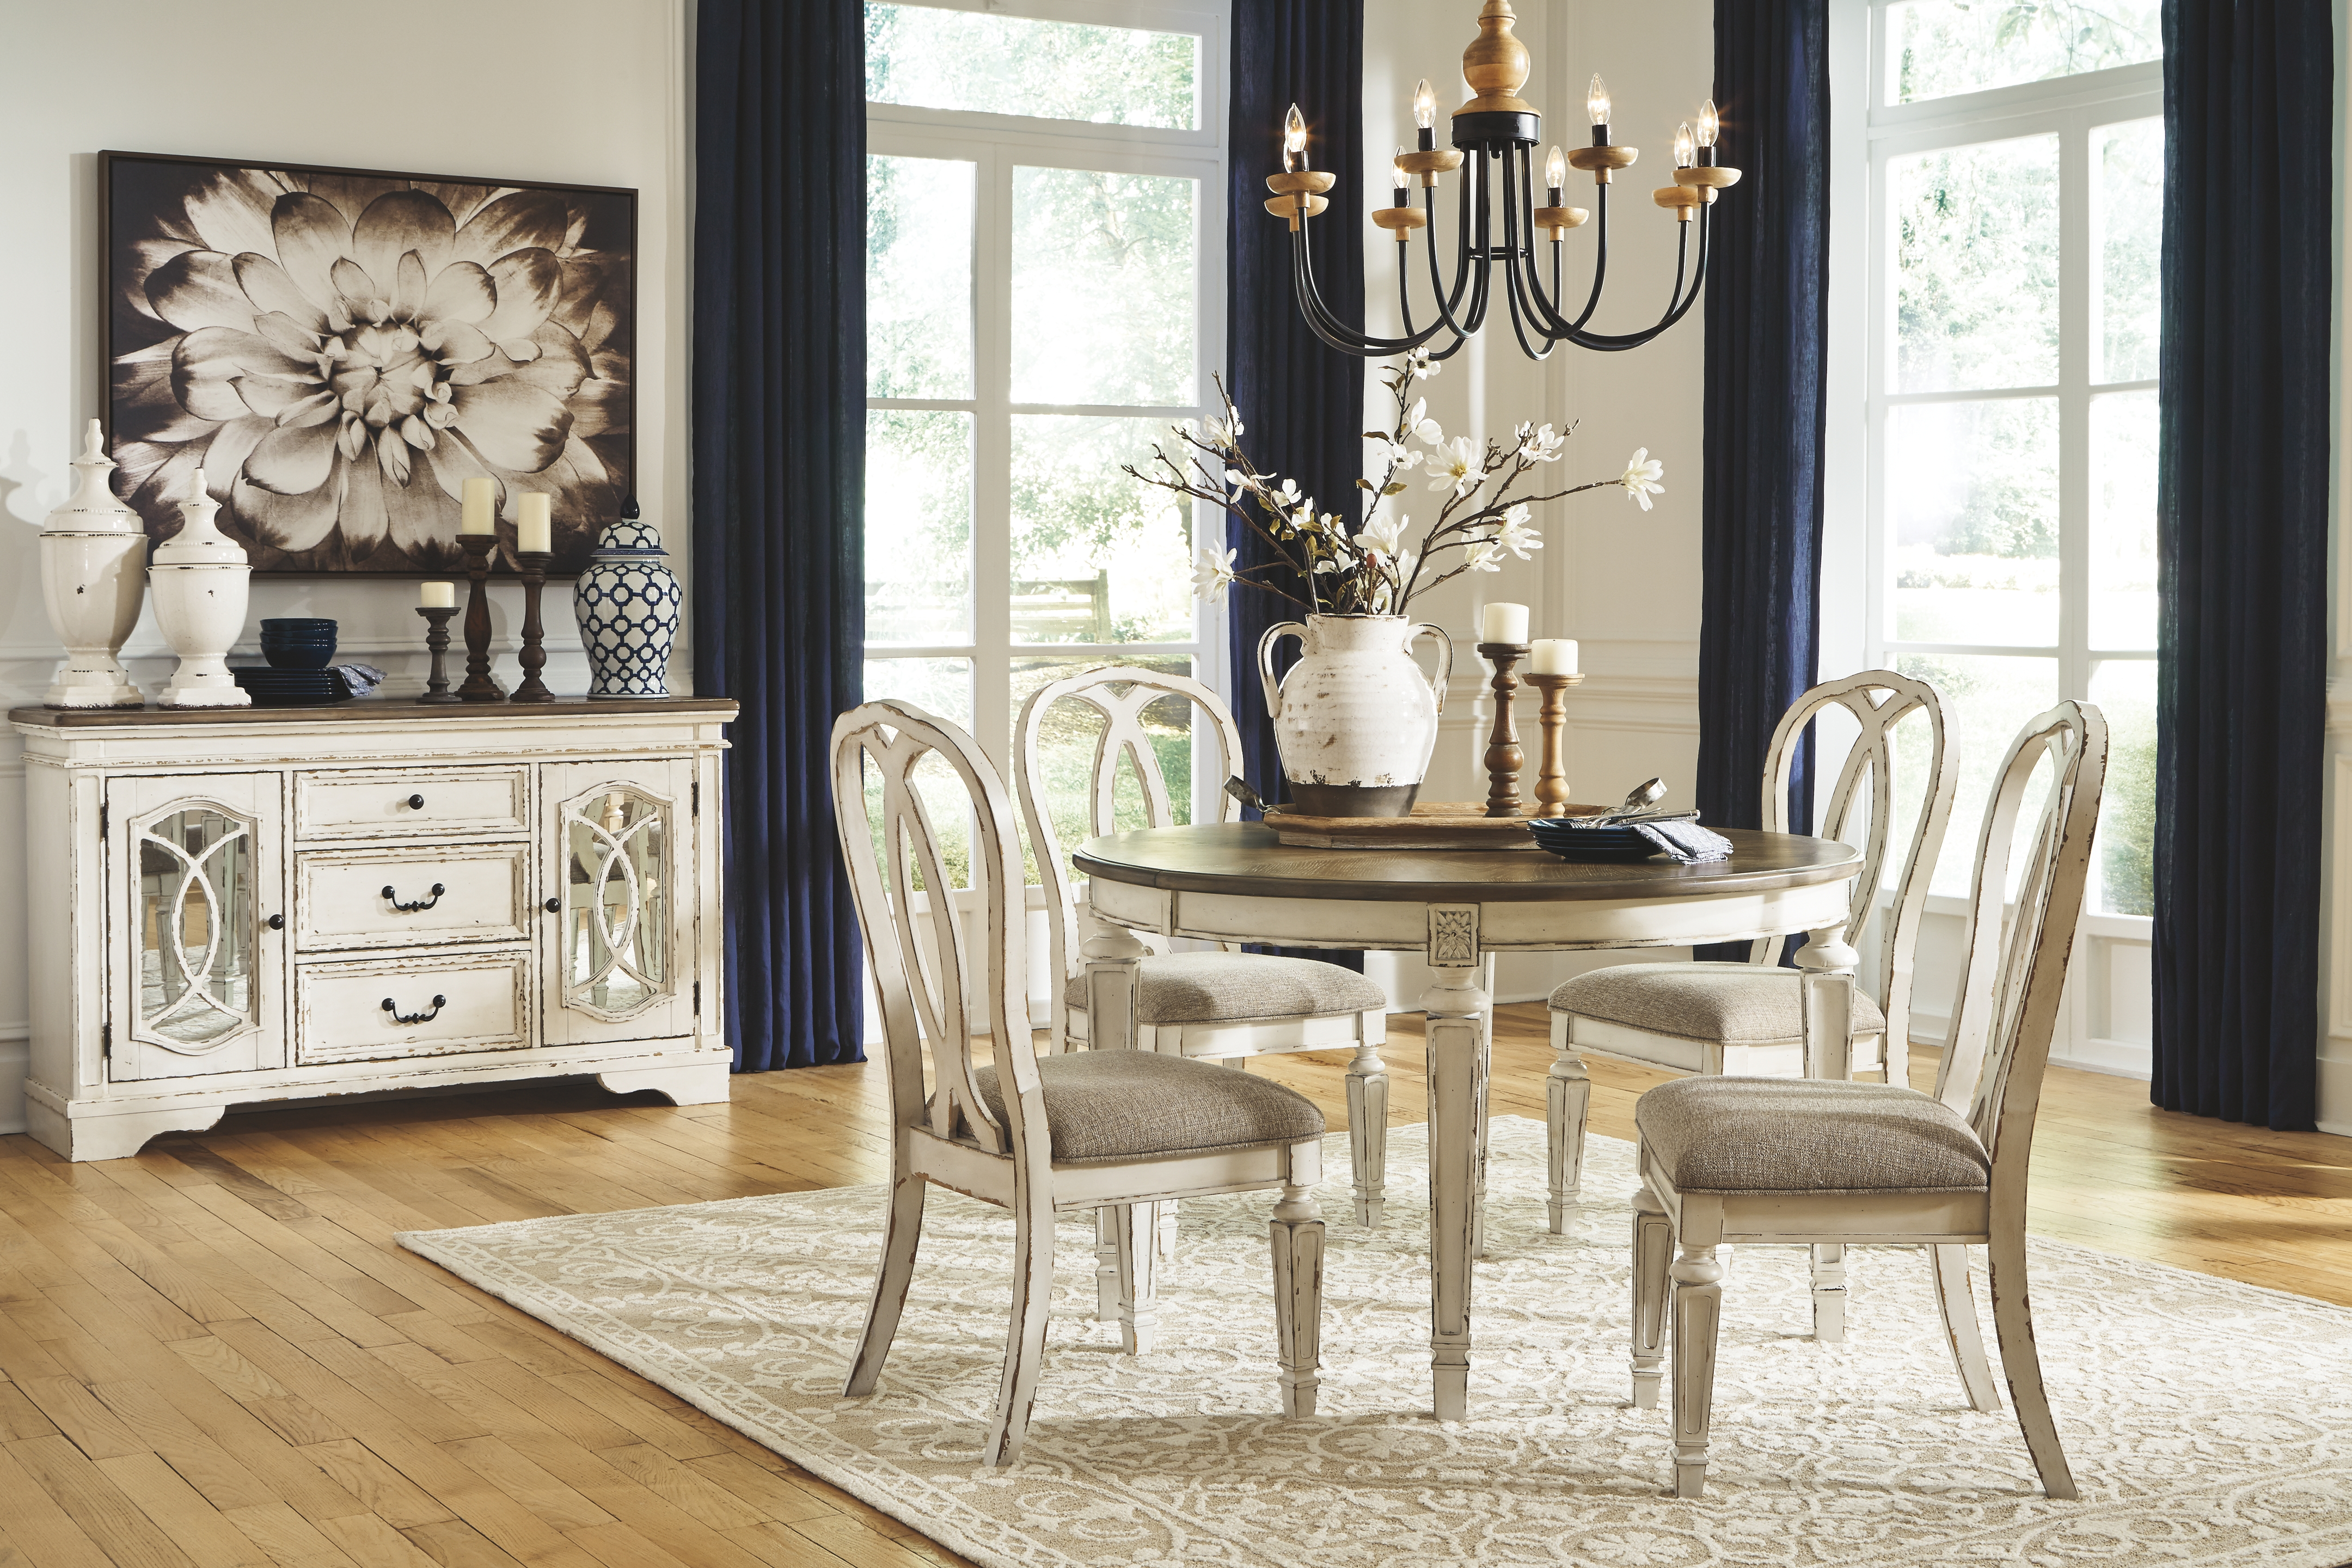 Dining Room Table By Signature Design By Ashley D743 35 The Furniture Mall